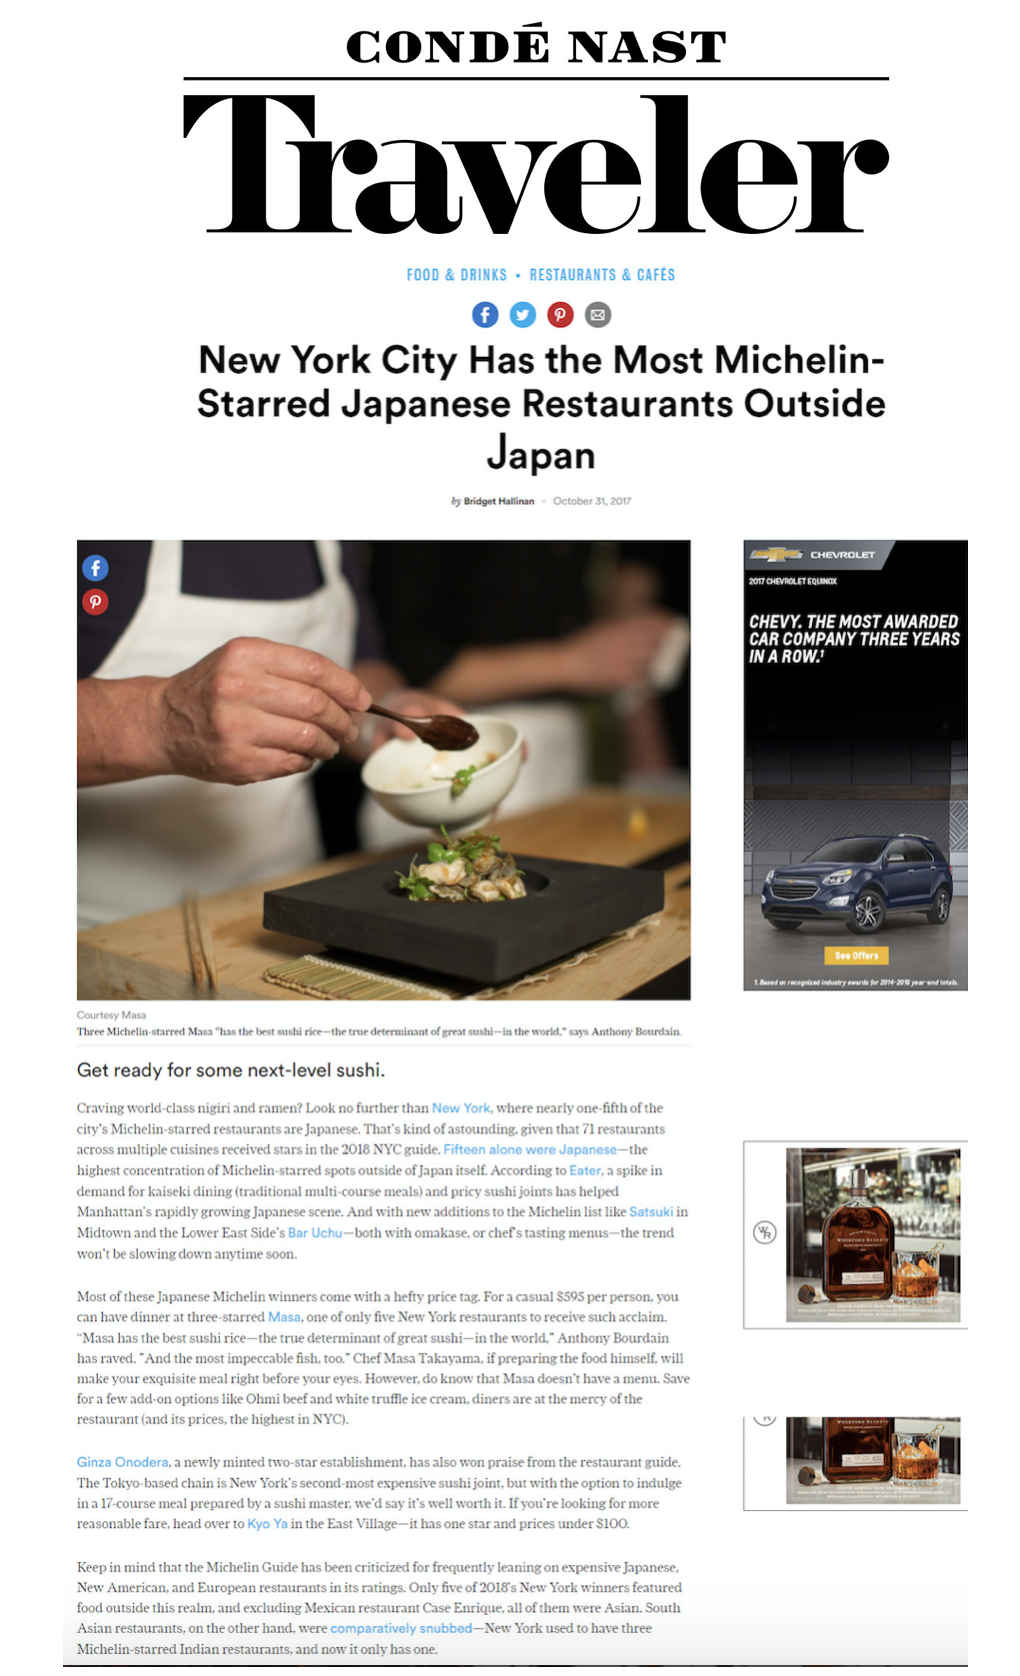 Condé Nast Traveler review page